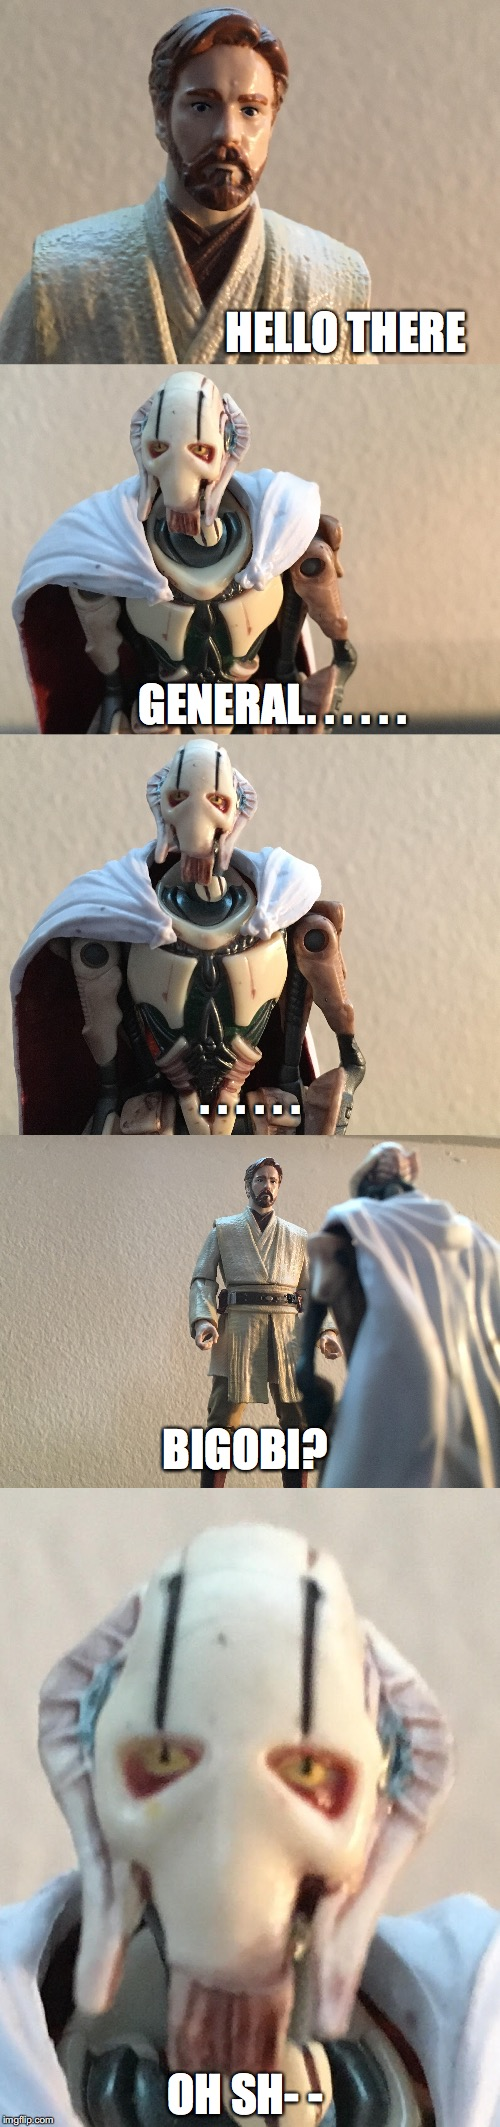 Obi-Wan's Secret Weapon |  HELLO THERE; GENERAL. . . . . . . . . . . . BIGOBI? OH SH- - | image tagged in star wars prequels,revenge of the sith,hello there,general kenobi hello there,obi wan kenobi,general grievous | made w/ Imgflip meme maker